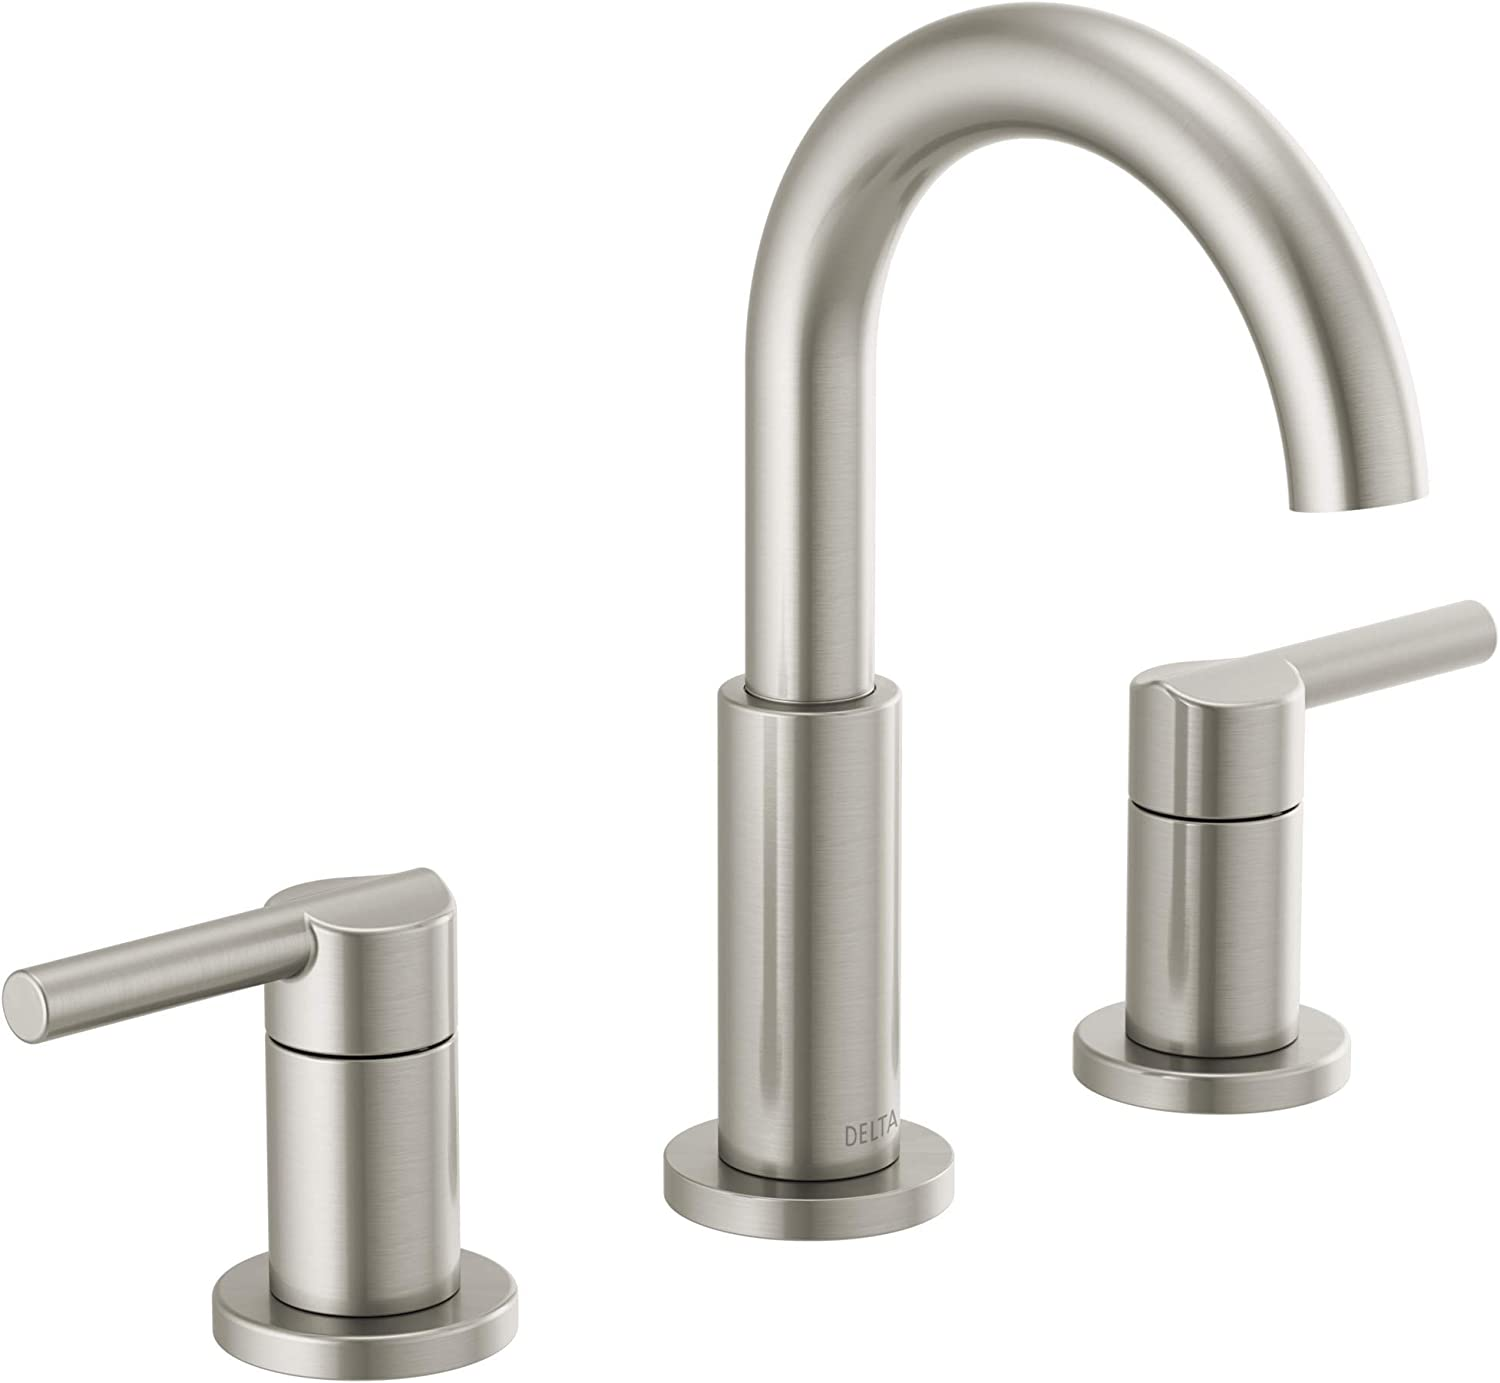 Delta Faucet Nicoli Widespread Bathroom Faucet Brushed Nickel Bathroom Faucet 3 Hole Bathroom Sink Faucet Drain Assembly Stainless 35749lf Ss Amazon Com